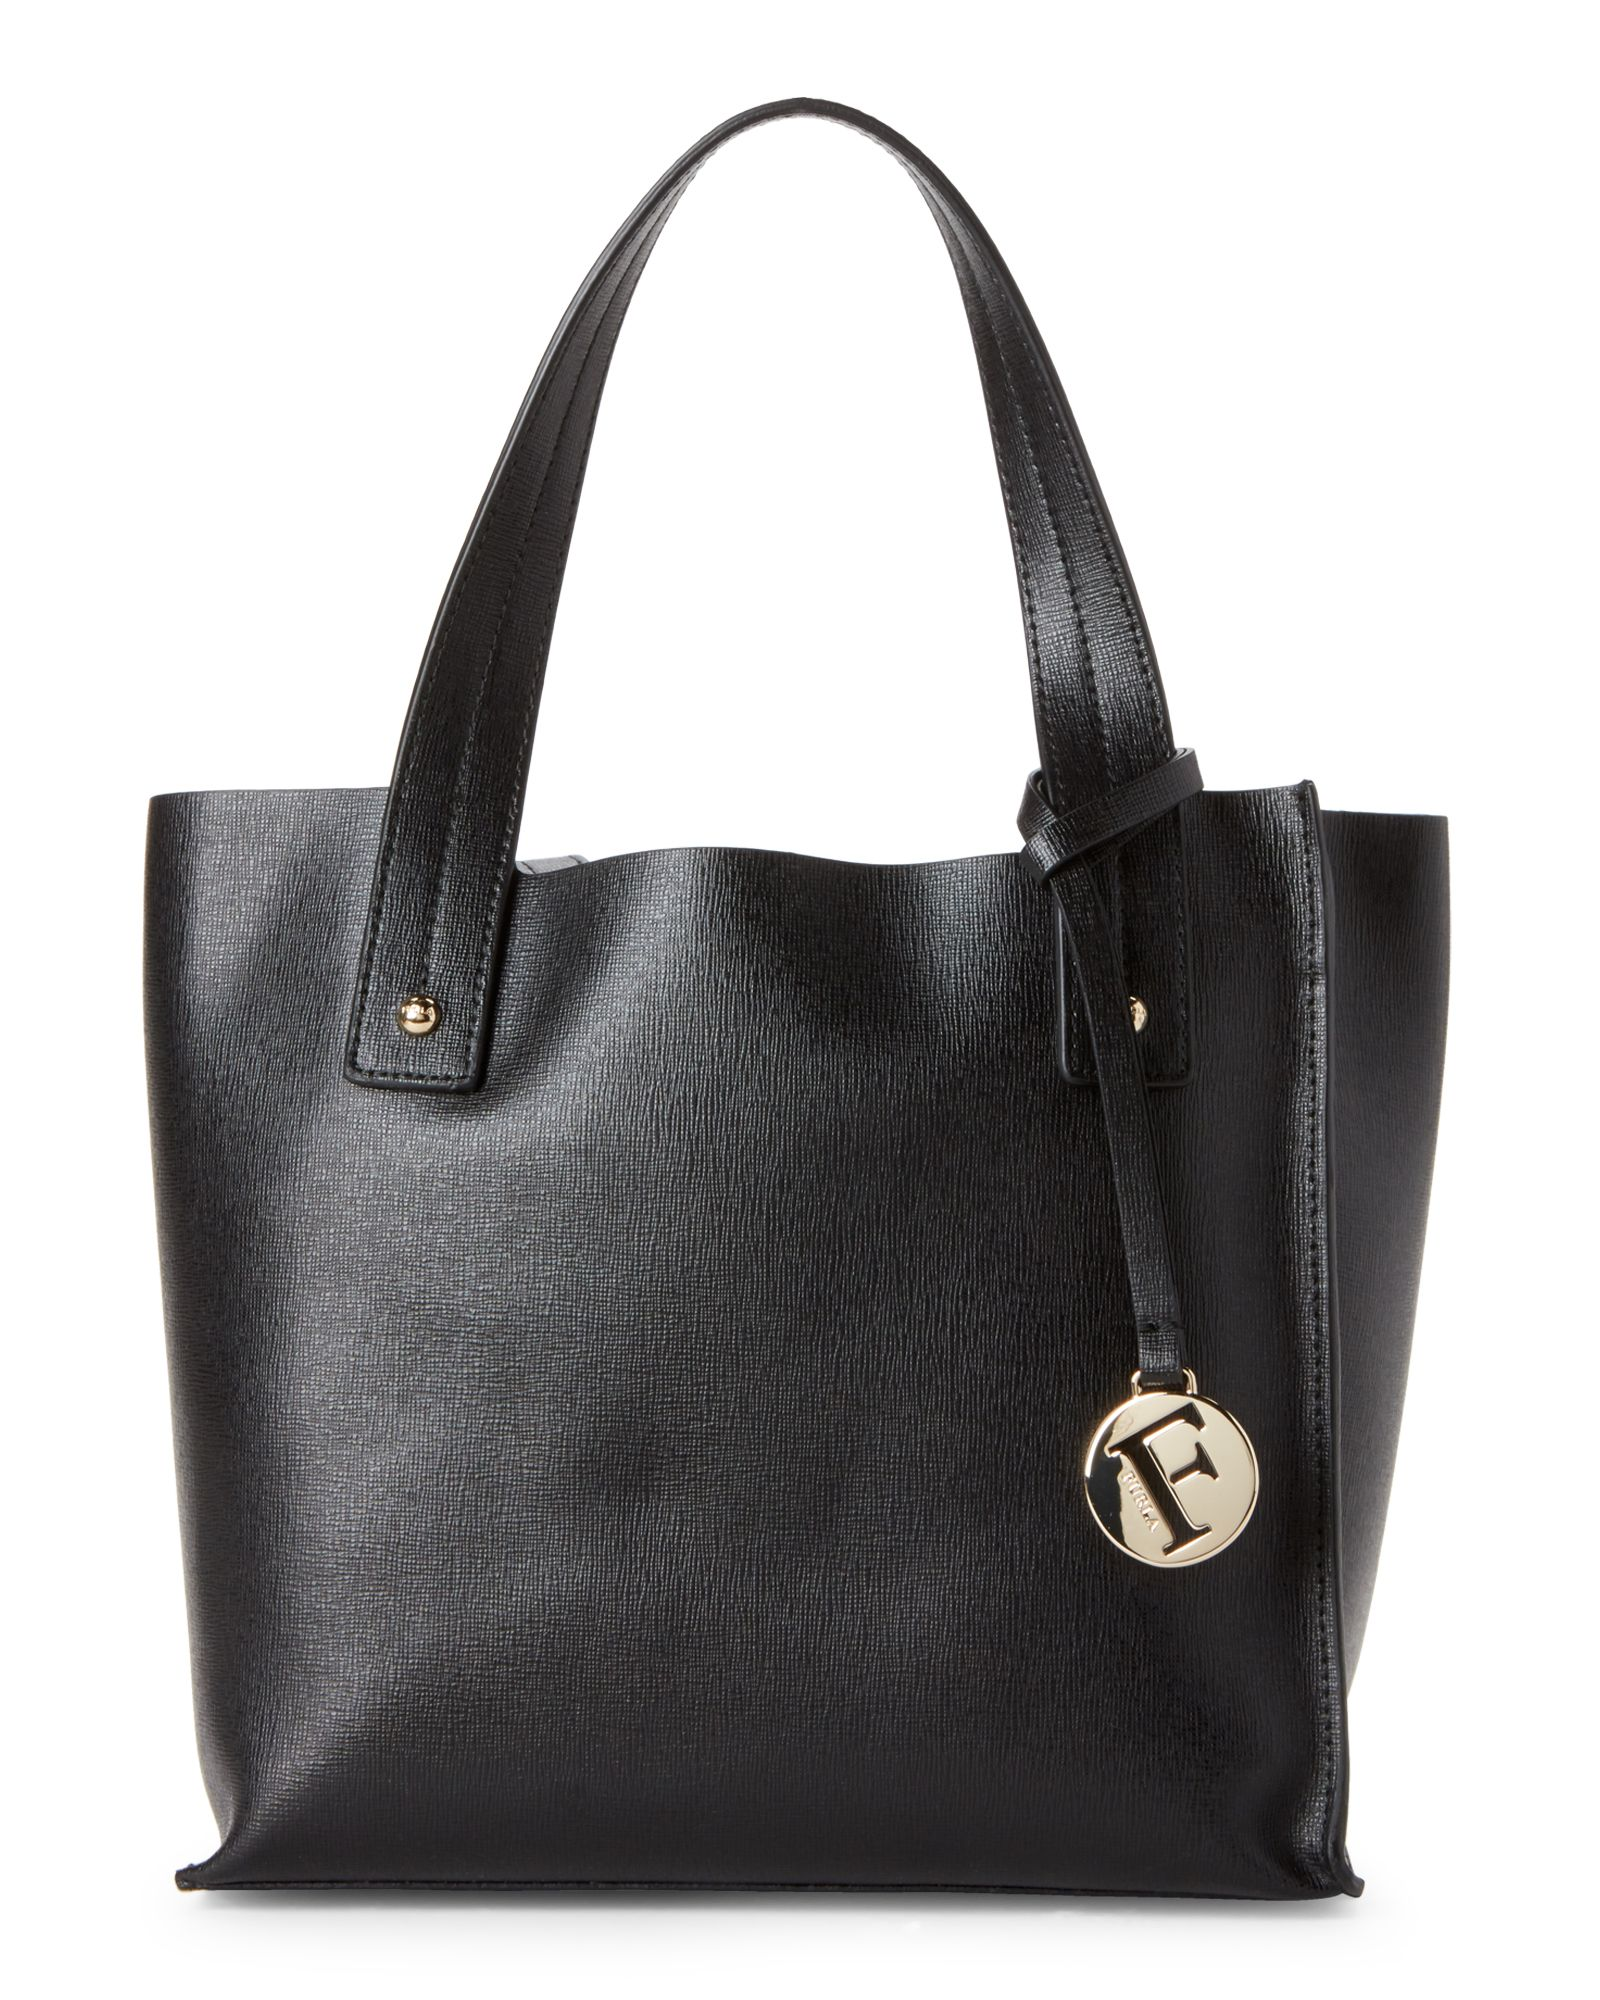 ac847d814b Onyx Muse Small Leather Tote | *Apparel & Accessories* | Leather ...